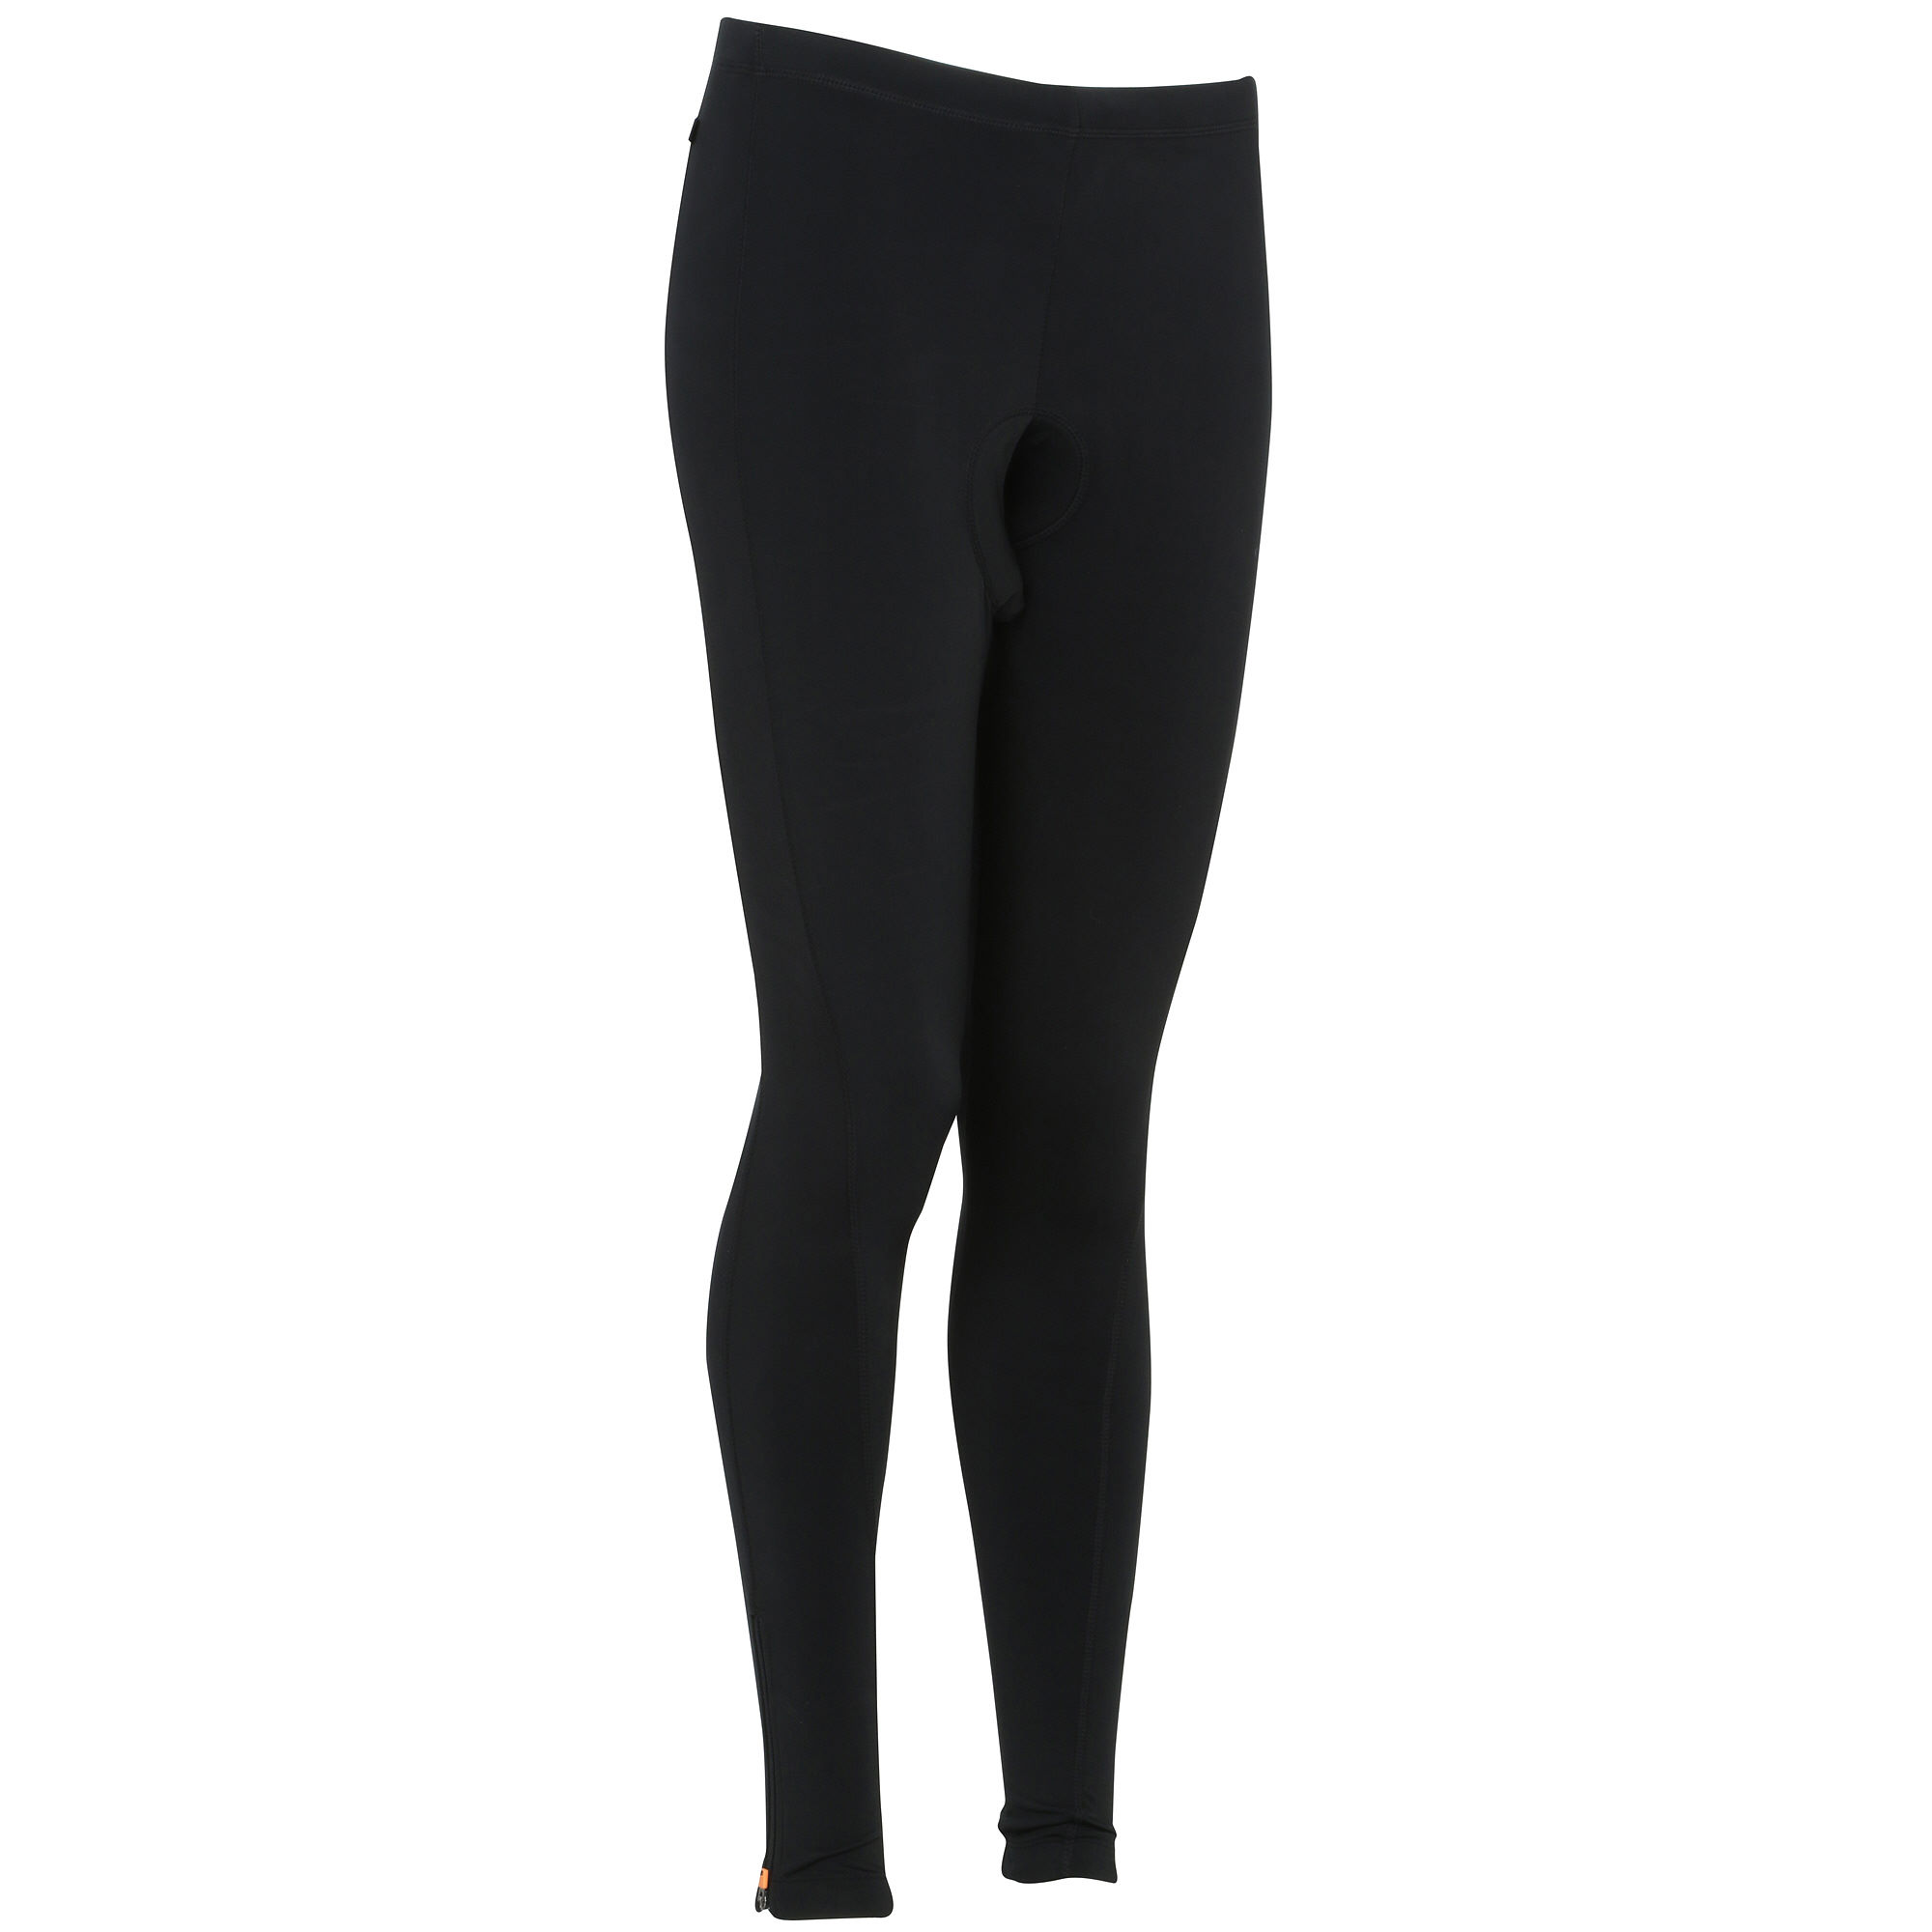 thermal black single women Shop thermal underwear at outersportscom with free shipping and free returns on eligible orders includes merino wool, polypropylene, cotton, and polyester fleece thermals, for men, women.